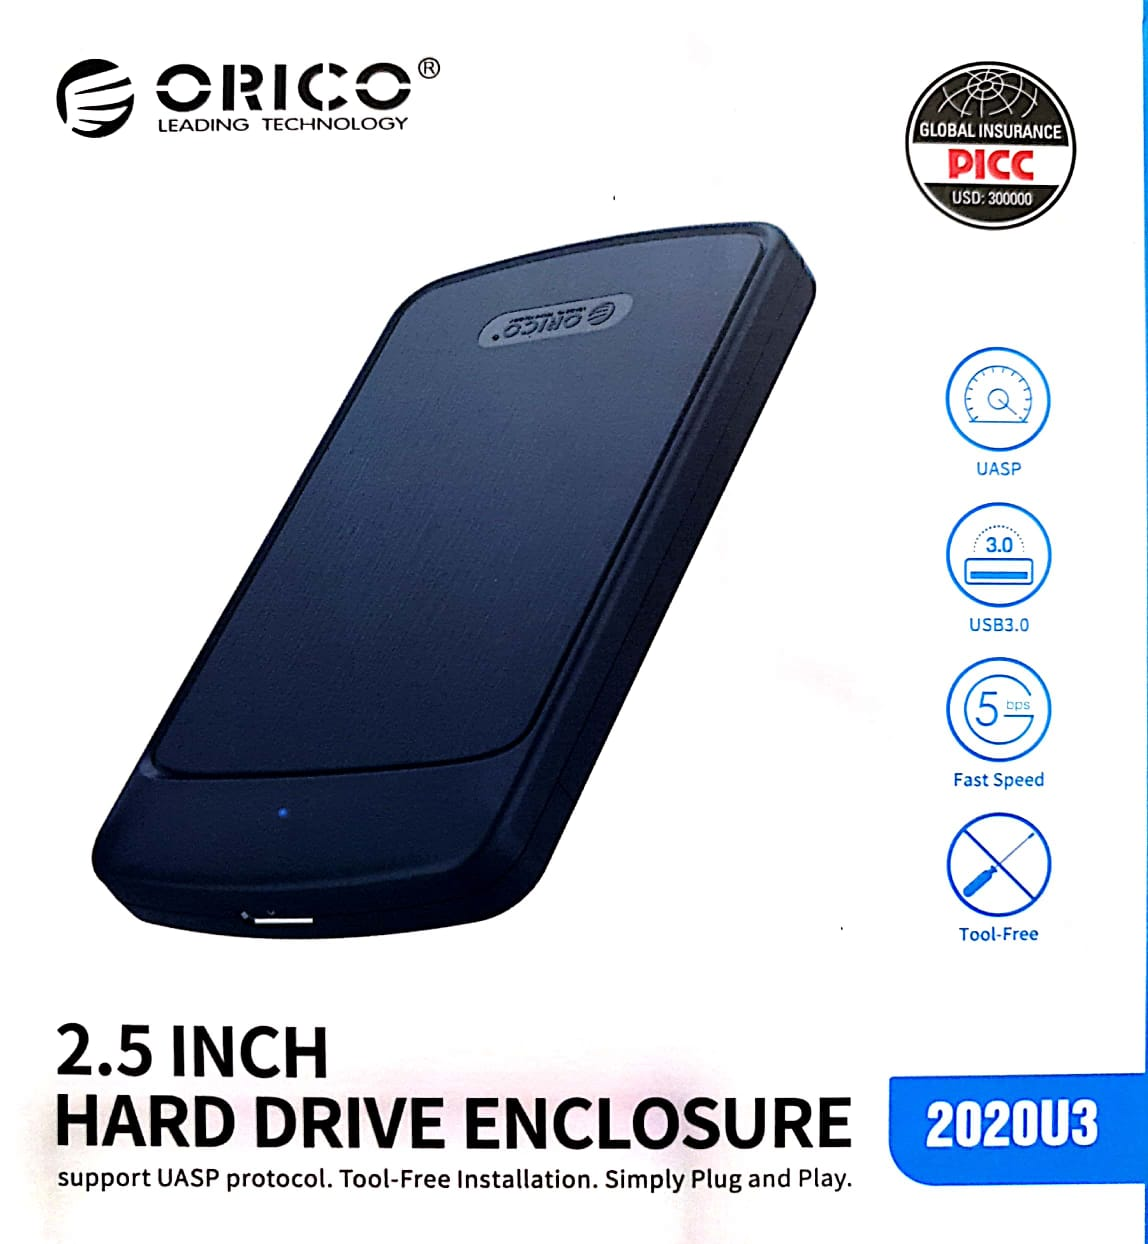 ORICO 2020U3 USB 3.0 HDD case 2.5 inch SATA SSD Hard Drive Case Support 4TB Mobile External HDD Enclosure Box High Speed Case External Case Caddy